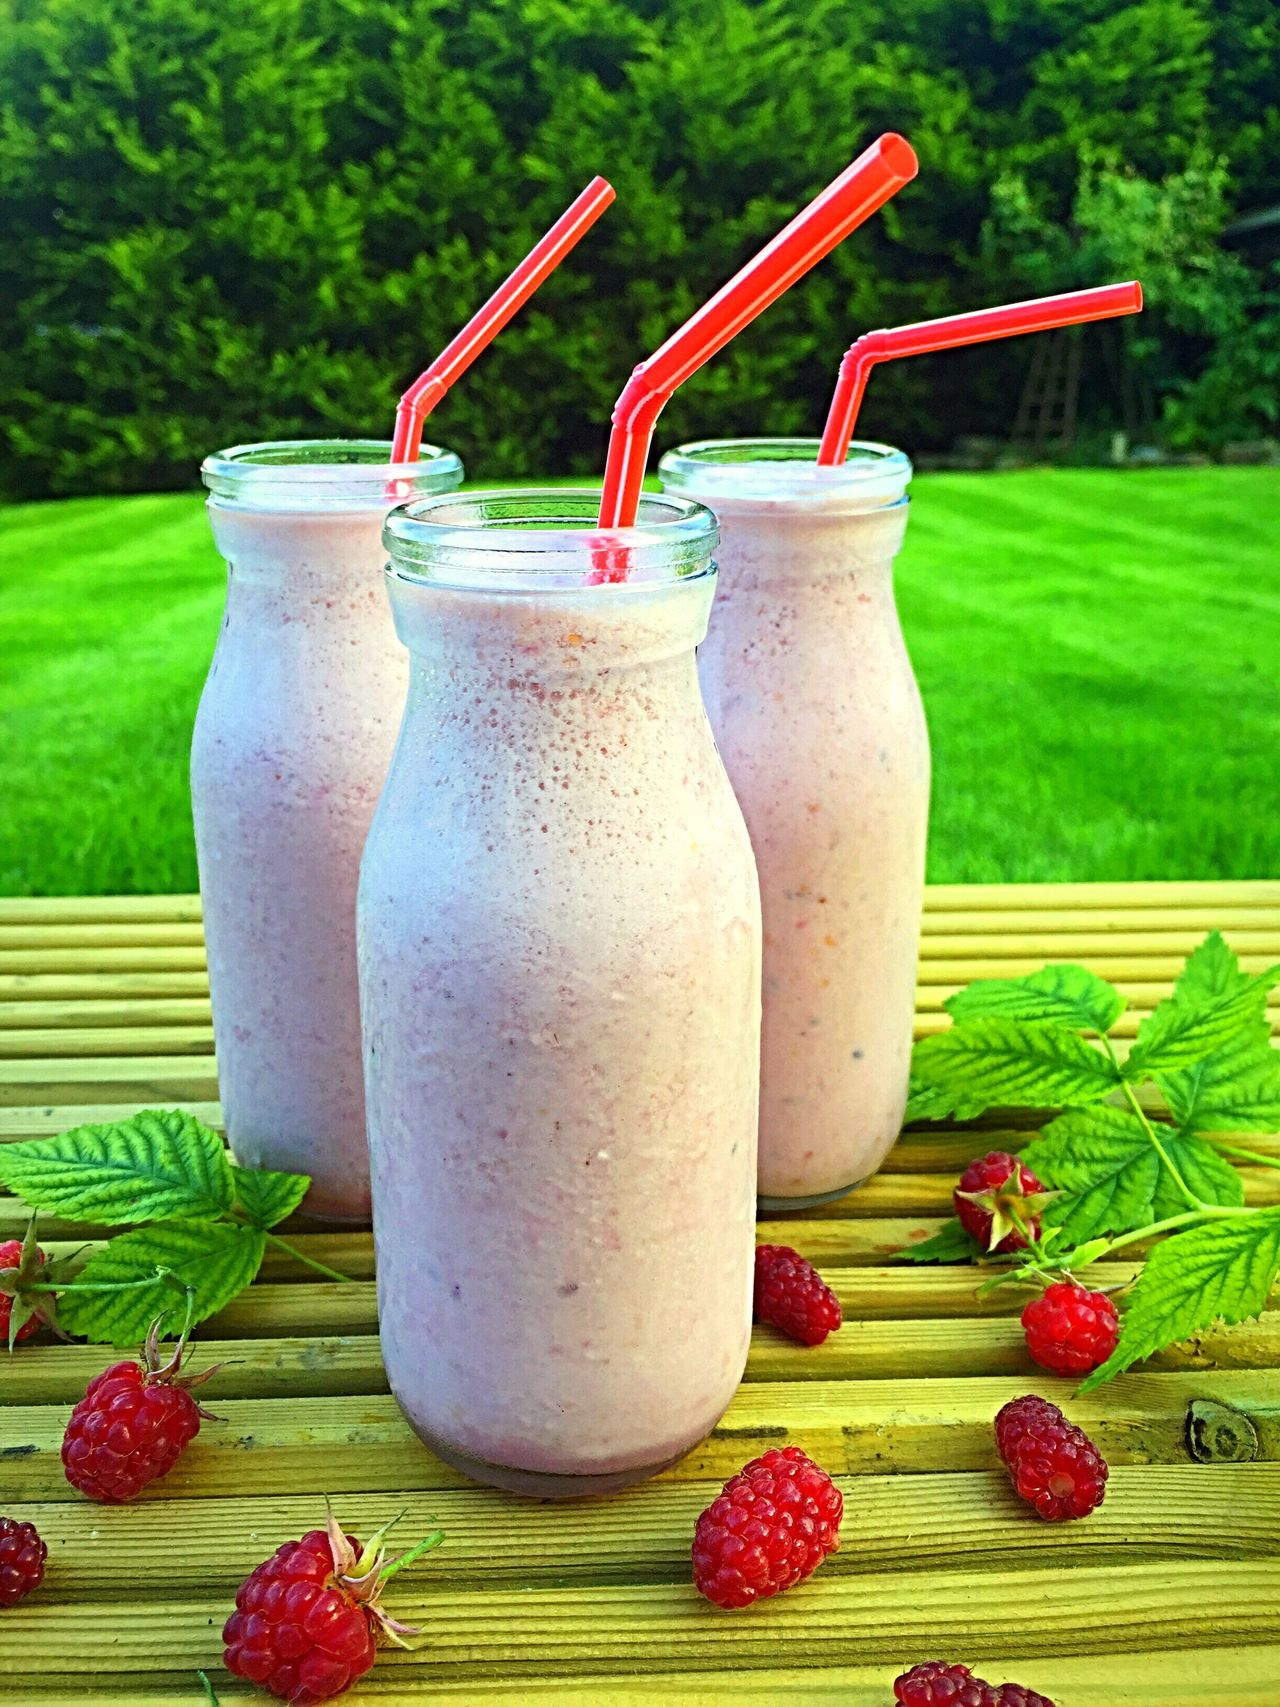 Raspberries Superfoodsuperboost Milkshake♥ Refreshment Beverage Healthy Drinks Delicious Summer ☀ Garden Photography Garden Homegrown Smoothie Time  Smoothies Raspberryseason Creamy Thickshake Dairy Smoothie Time  Refreshing :) Food And Drink Refreshingdrink